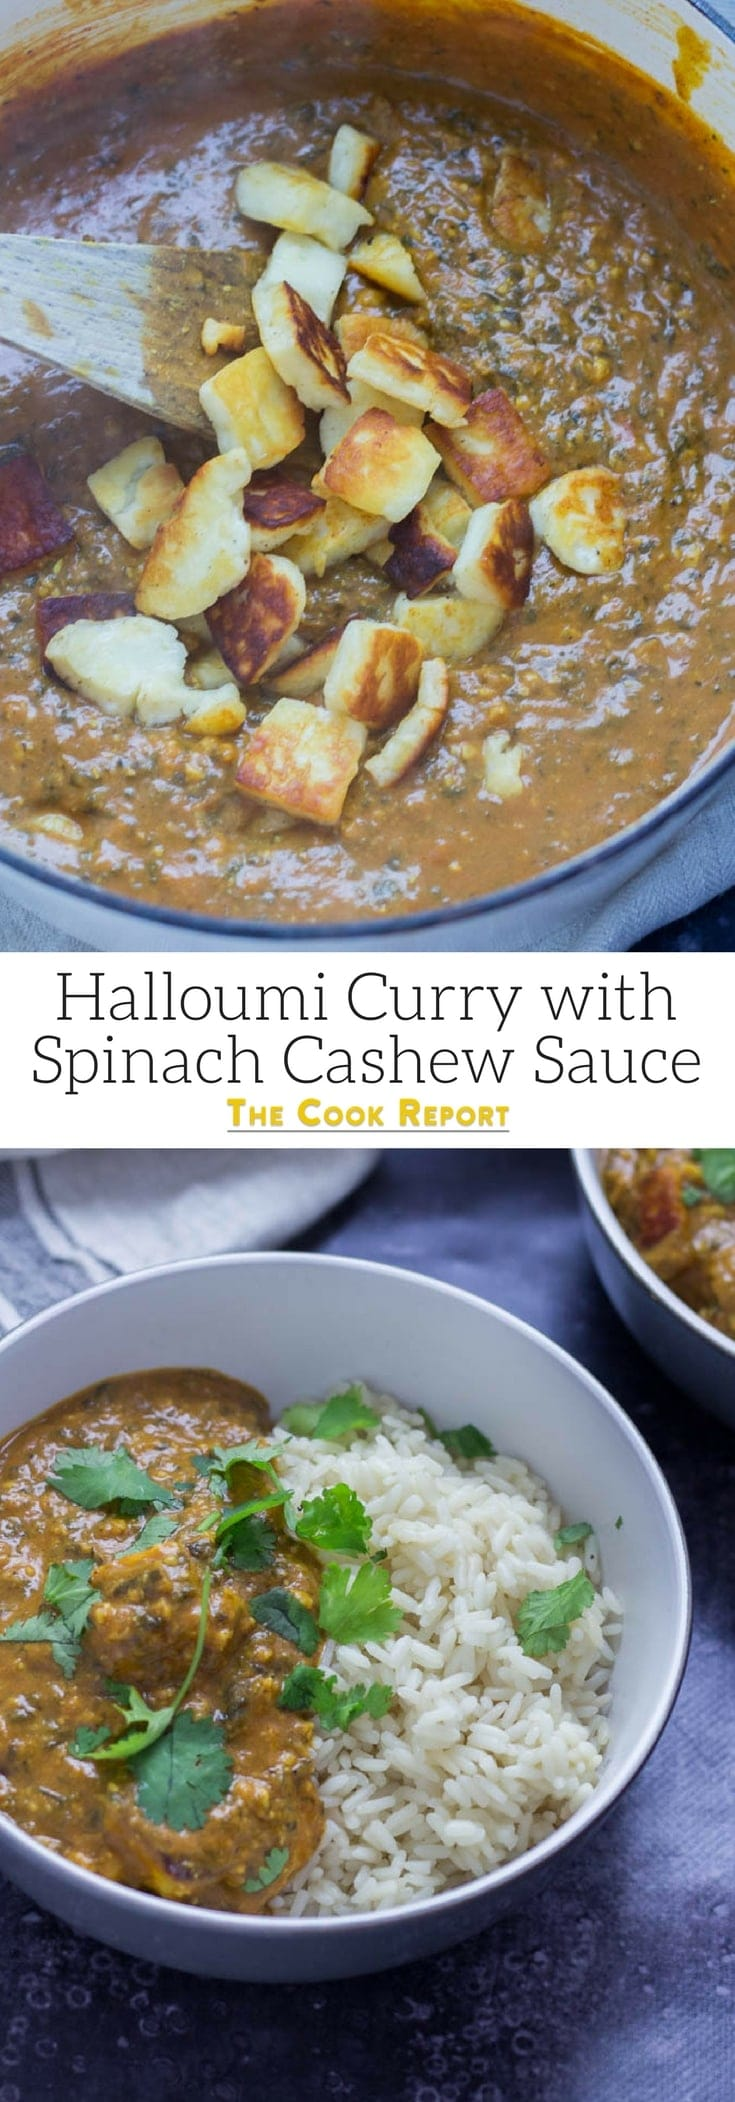 Halloumi Curry with Spinach Cashew Sauce. This super creamy curry sauce works perfectly with the salty halloumi. With hidden veggies from the spinach in the sauce this halloumi curry is a healthy vegetarian dinner that works for weeknight or a special occasion! #halloumi #vegetarian #recipe #curry #indianfood